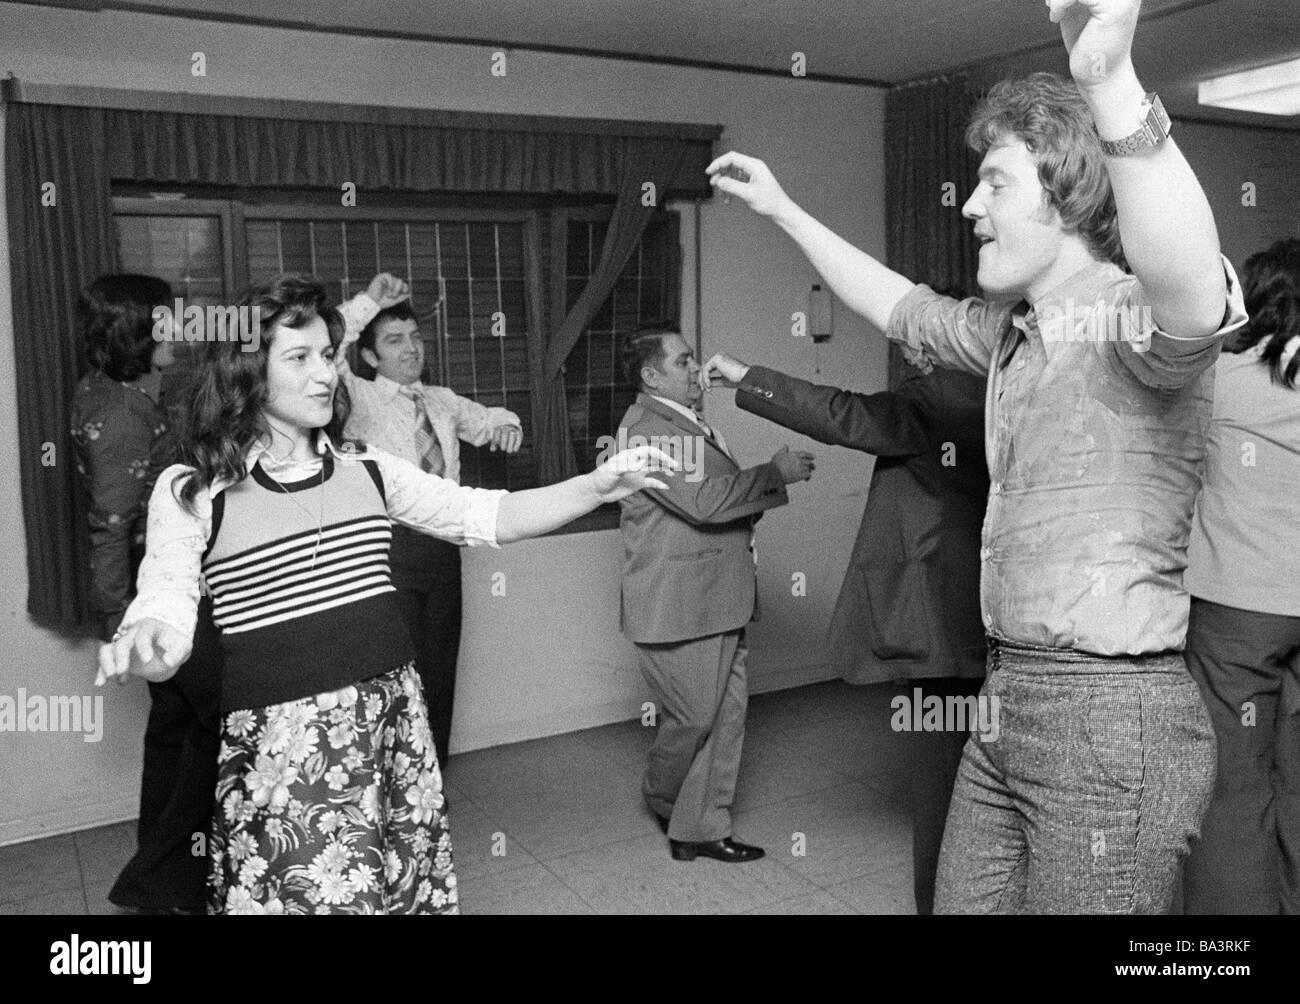 Seventies, black and white photo, people, minorities, guest-workers in Germany, Greeks, dance event, man, aged 25 - Stock Image